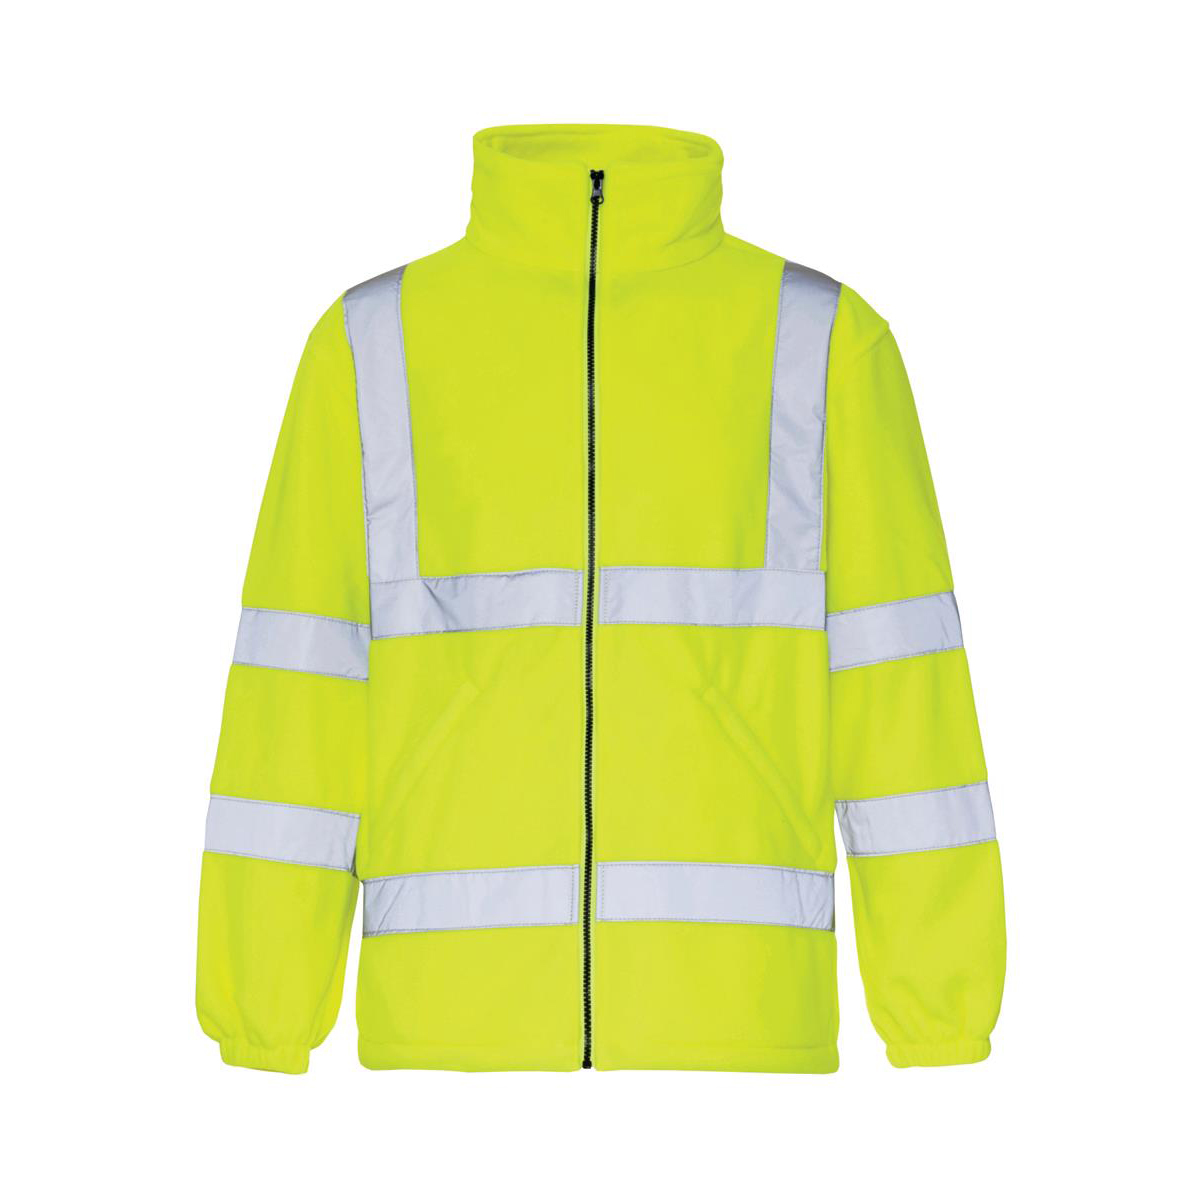 High Visibility Fleece Jacket Poly with Zip Fastening 2XL Yellow Approx 2/3 Day Leadtime